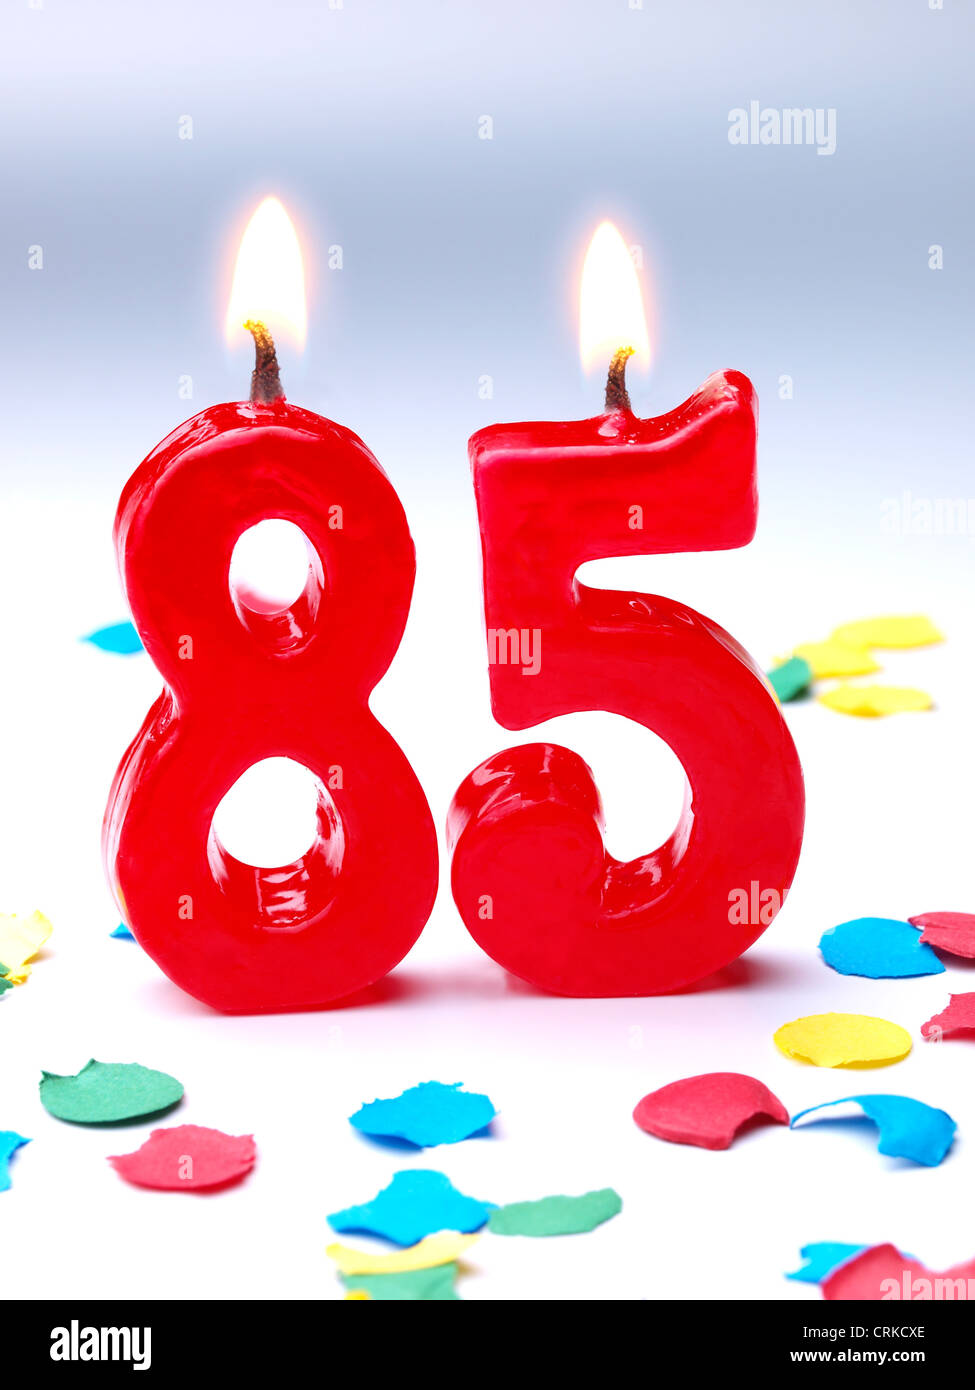 Birthday-anniversary candles showing Nr. 85